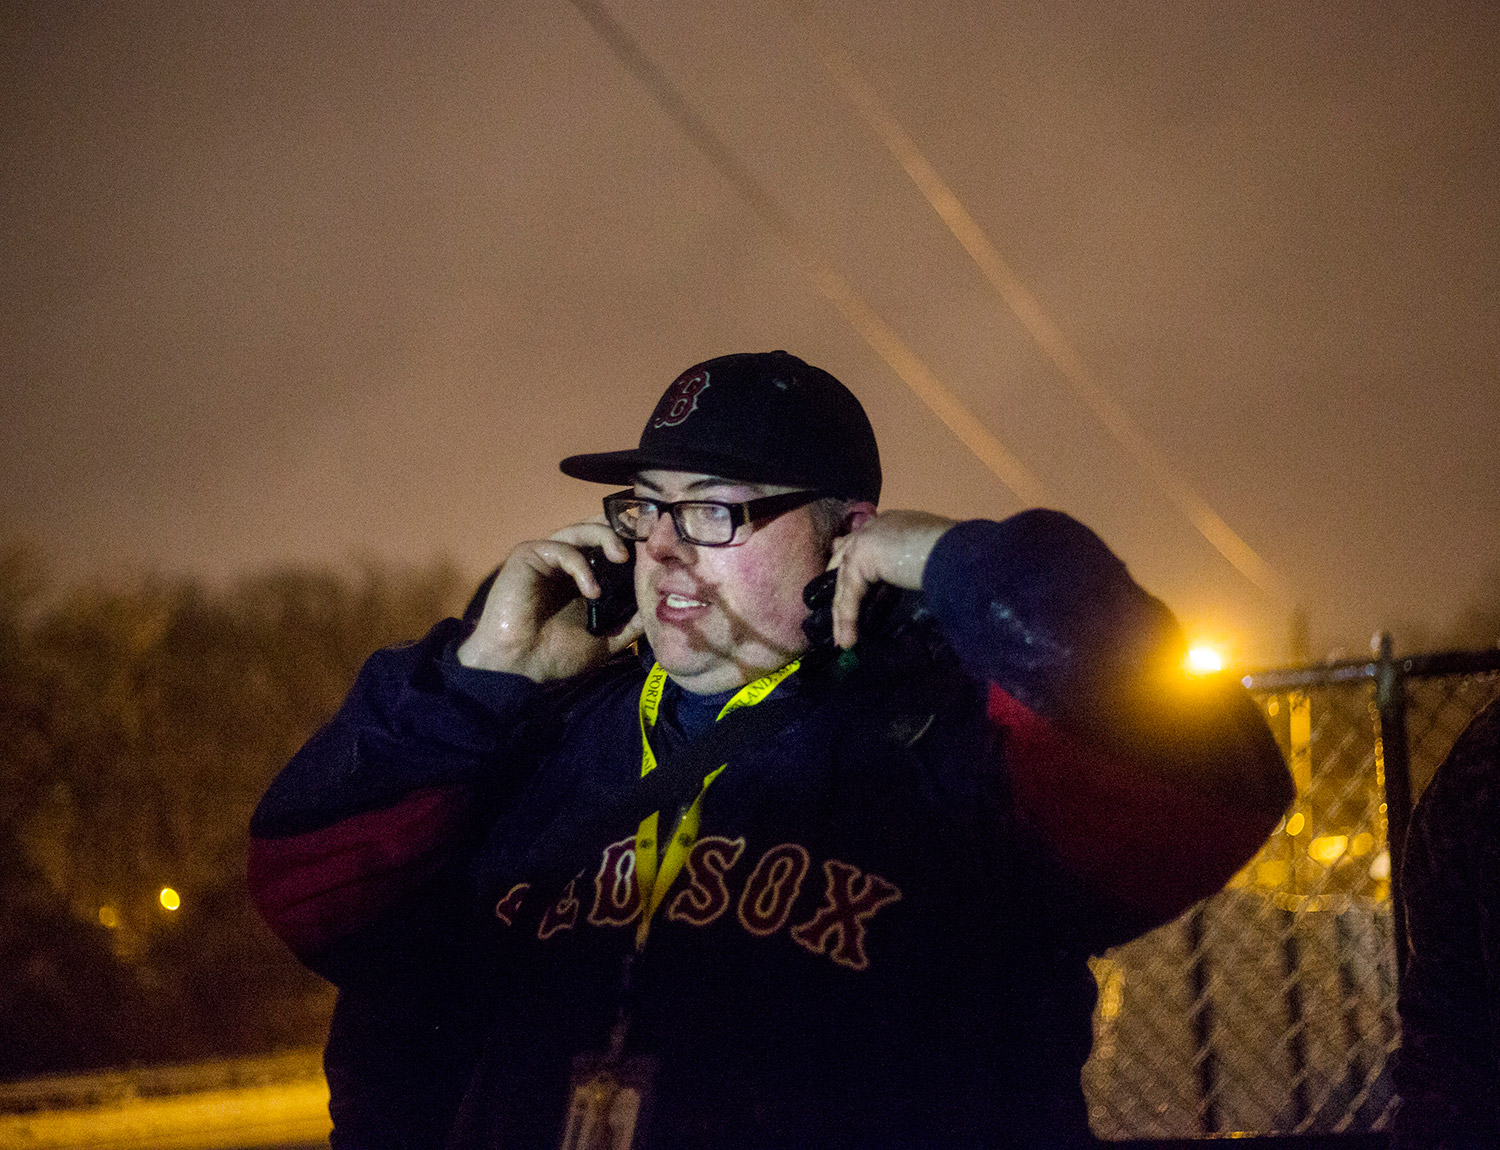 Rob Parritt calls police Tuesday night after finding a homeless camp in a locked area near Fitzpatrick Stadium. The police got into the camp, but no one was in it.